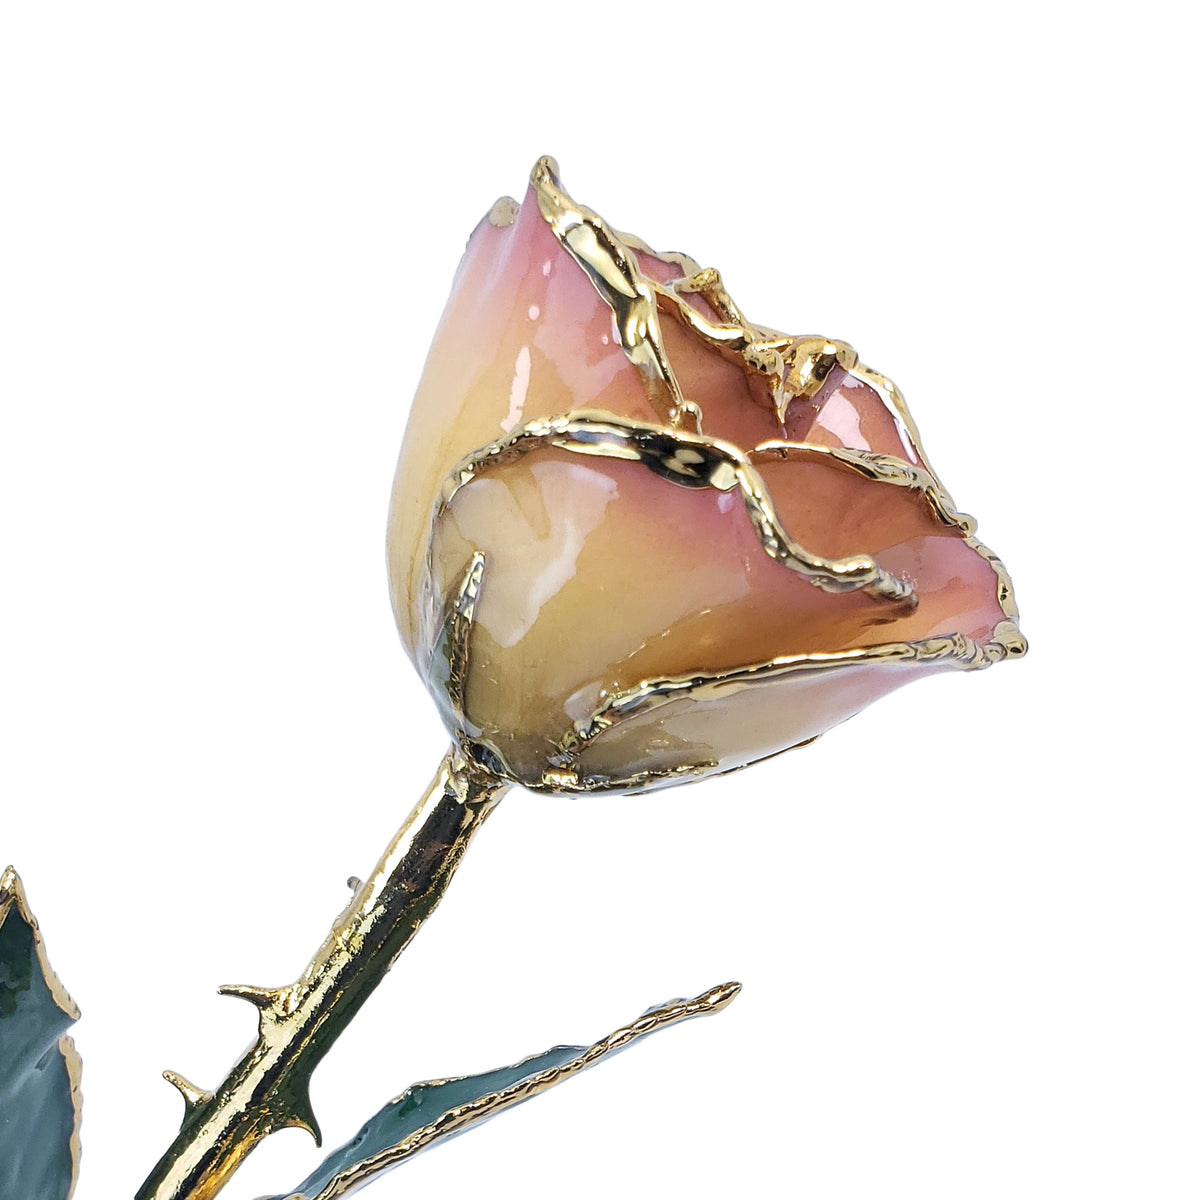 24K Gold Forever Rose - White to Pink